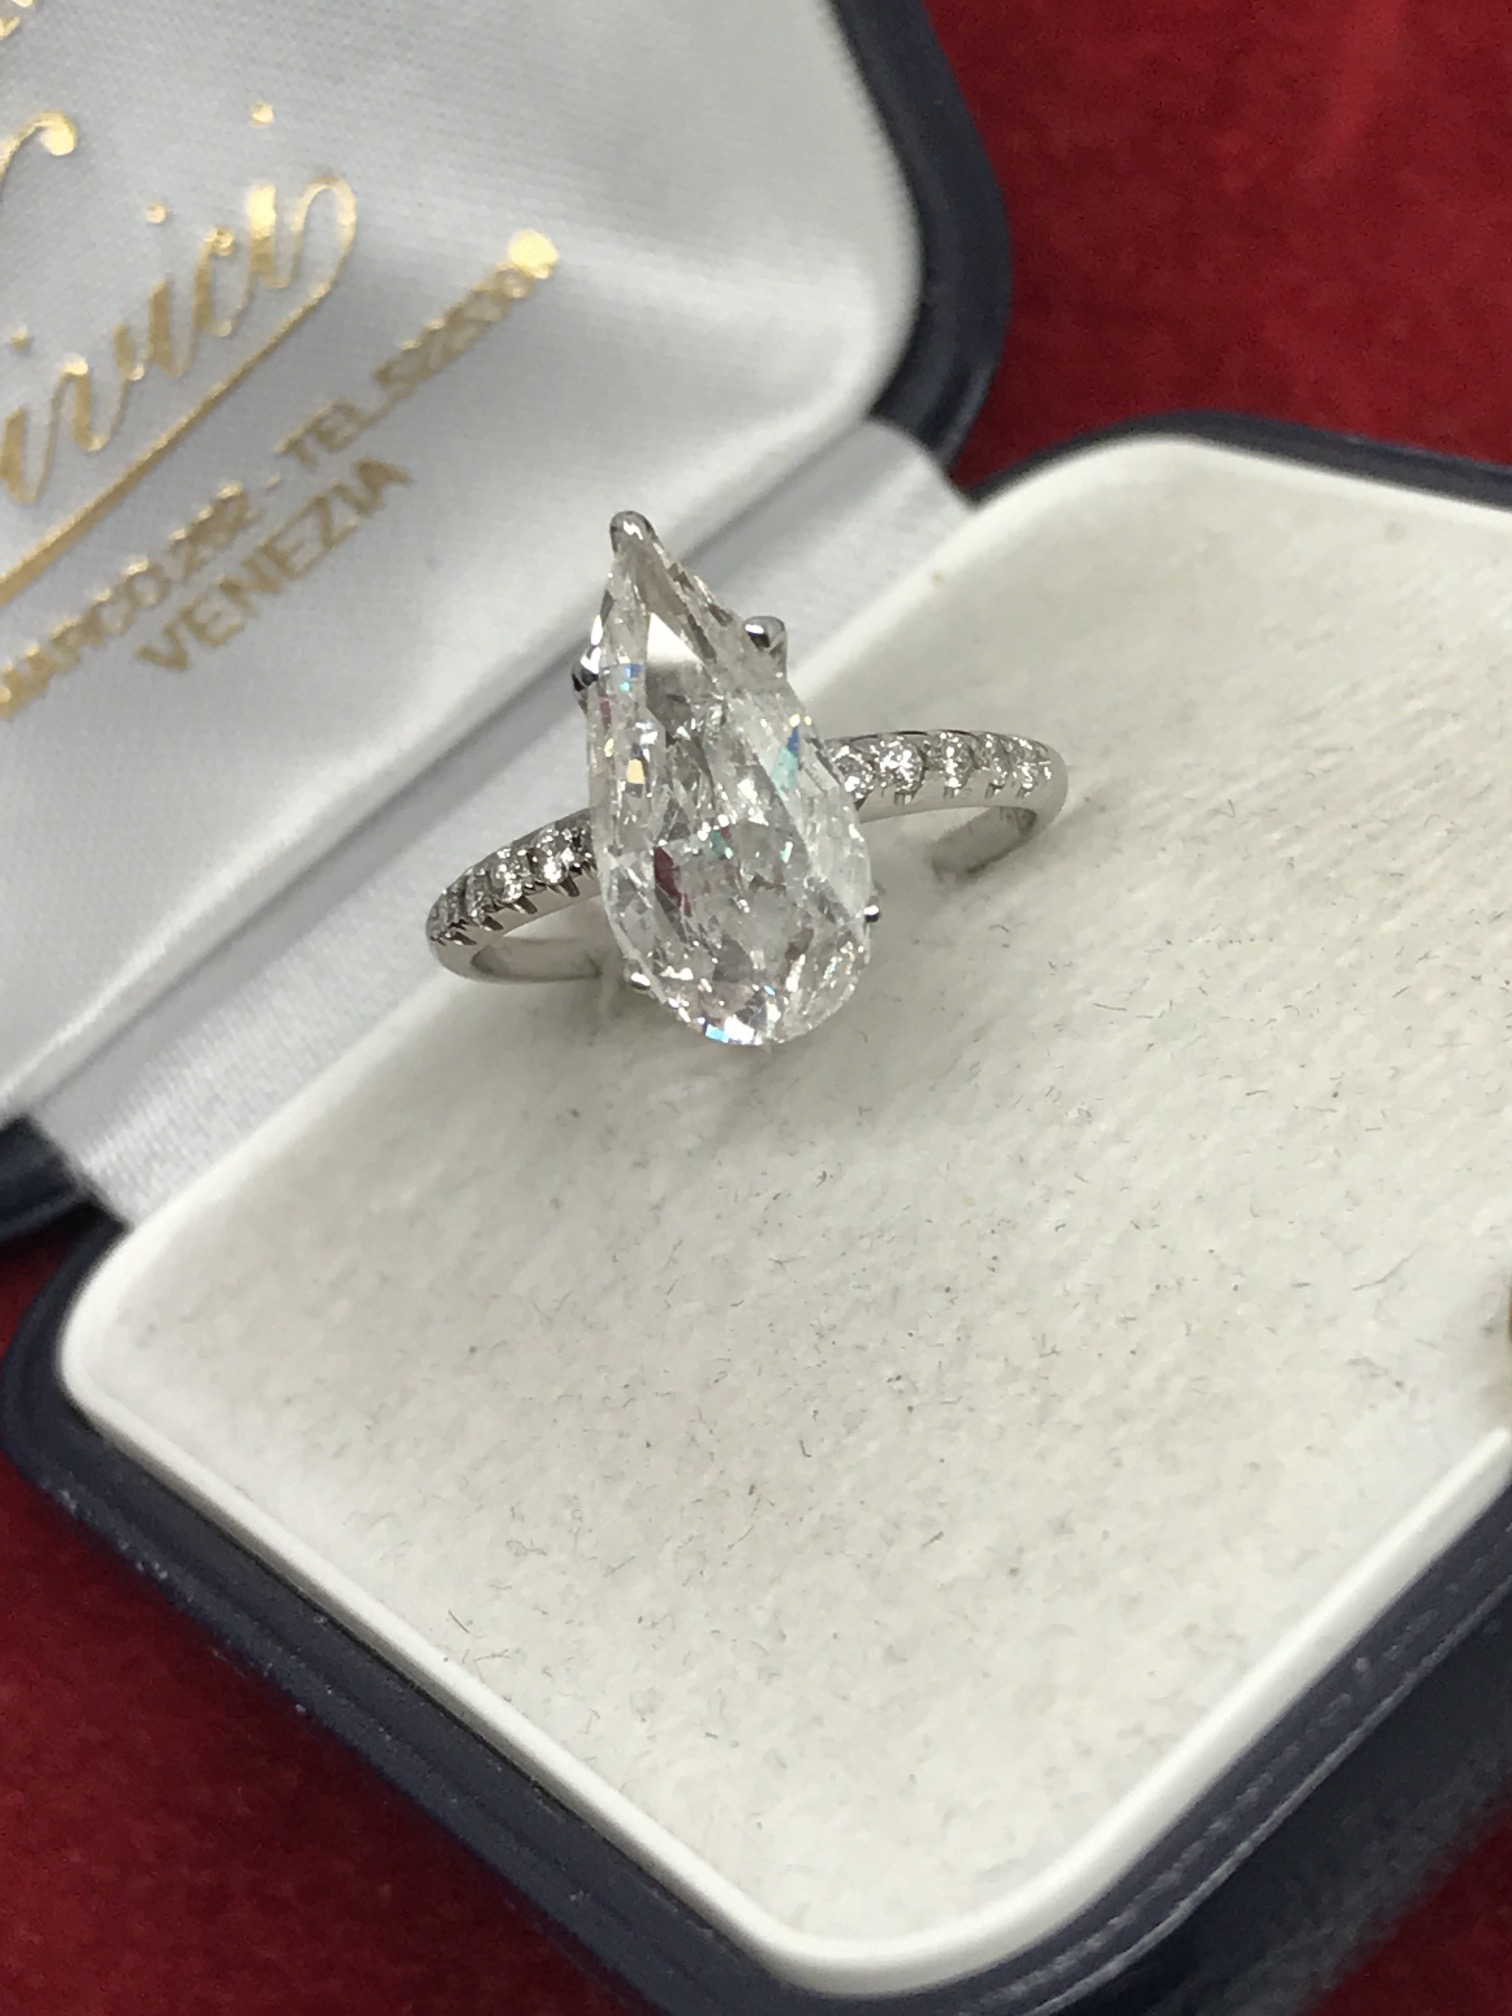 Lot 10 - AMAZING 2.20ct DIAMOND SOLITAIRE RING SET IN WHITE GOLD **VIDEO**